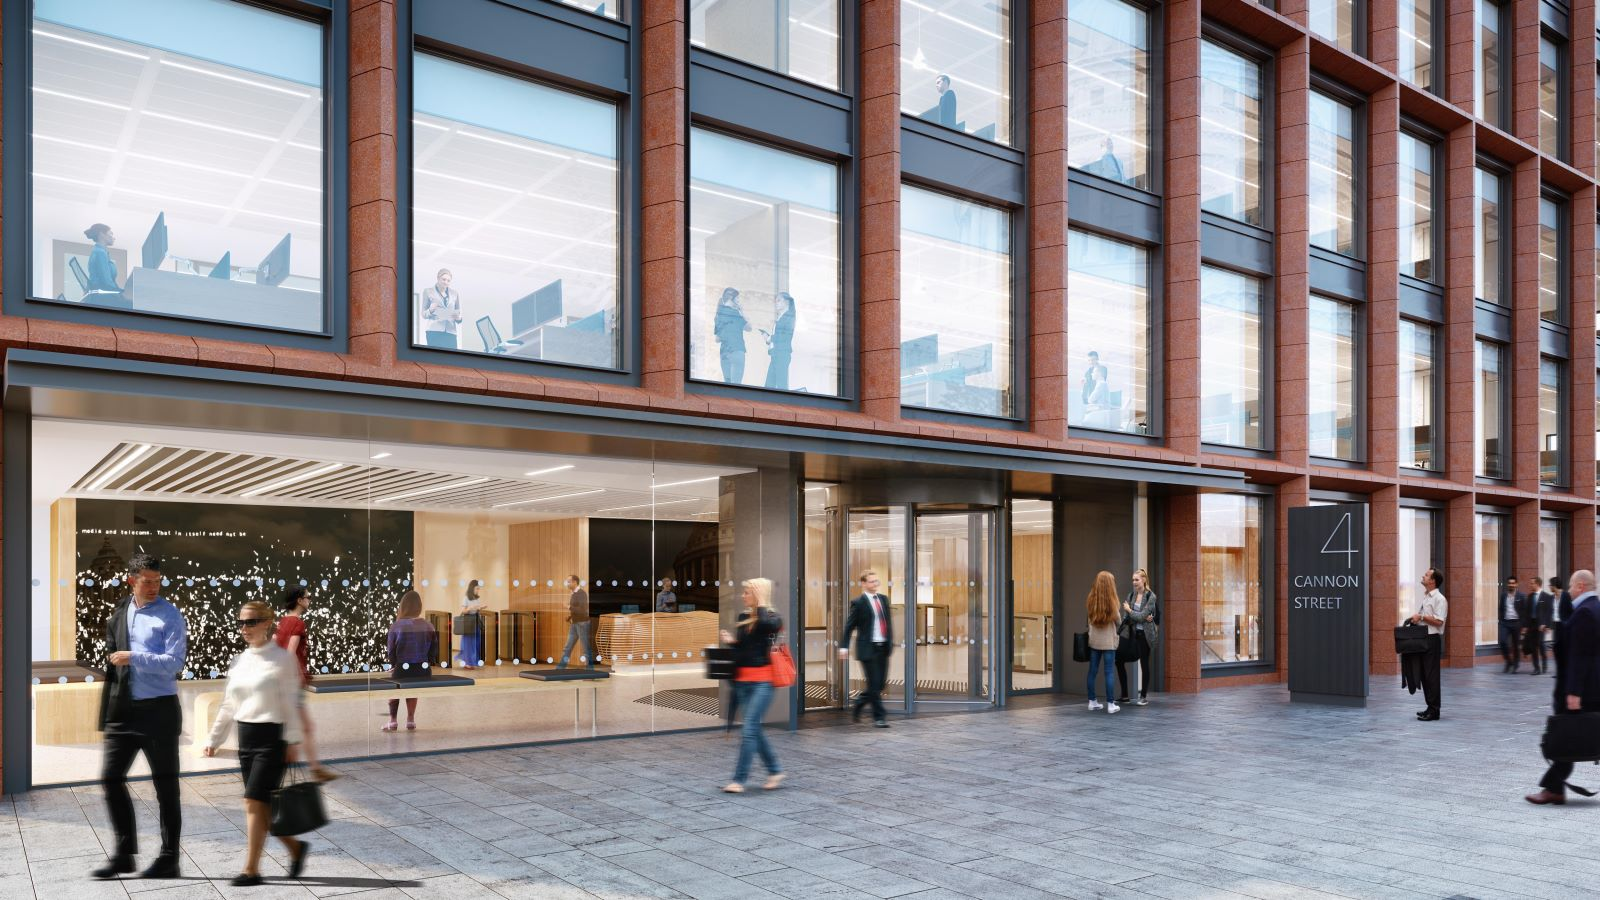 CGI view of end users walking outside the Fidelity building - Mace Group